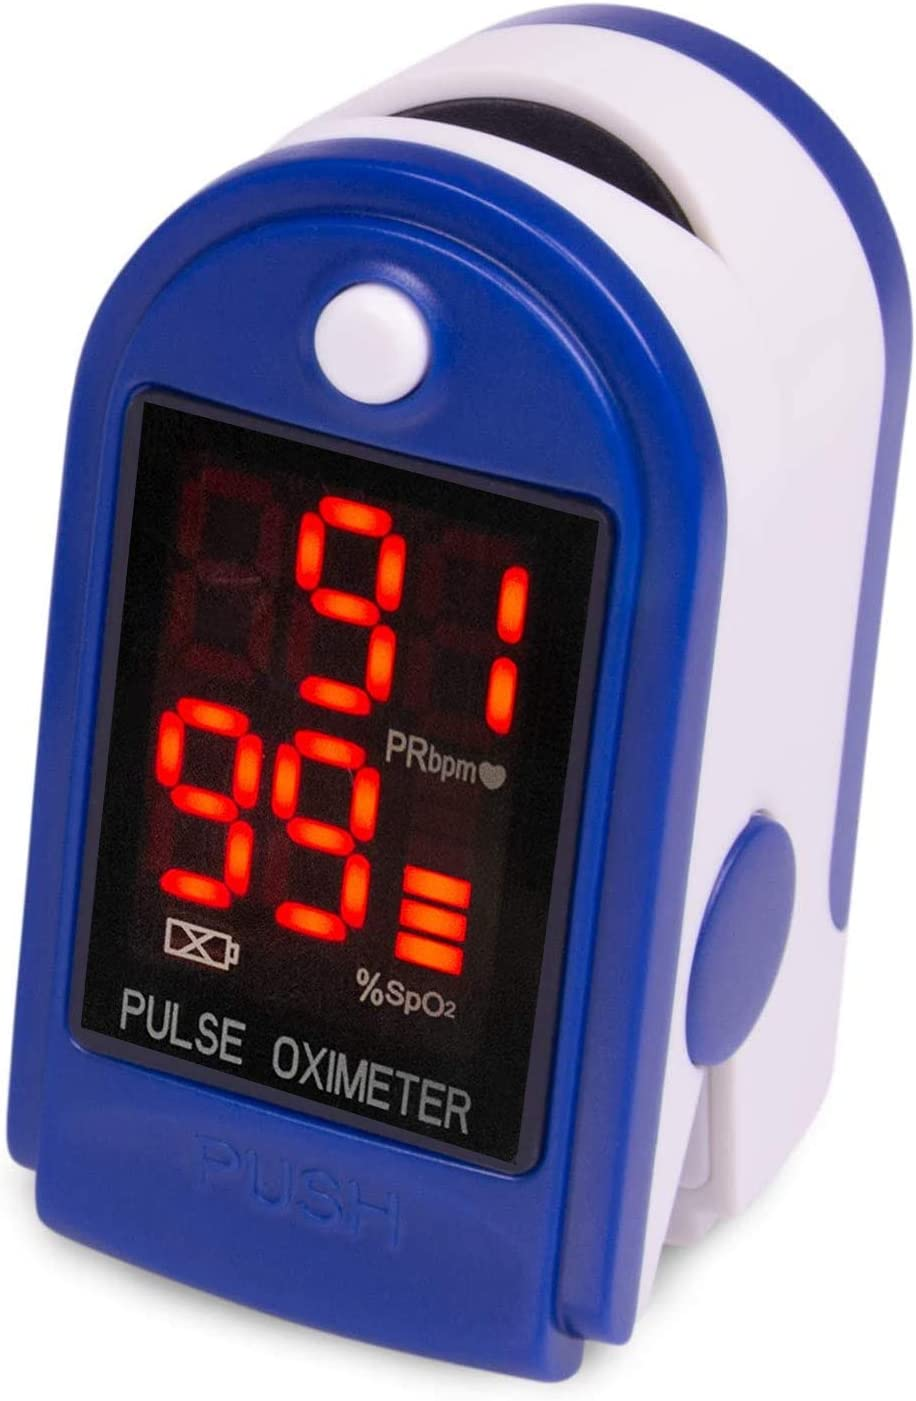 Roscoe Medical Finger Pulse Oximeter Oxygen Saturation Monitor - Pulse Ox Fingertip o2 Monitor for Pediatric and Adult - Sports and Aviation Use Only